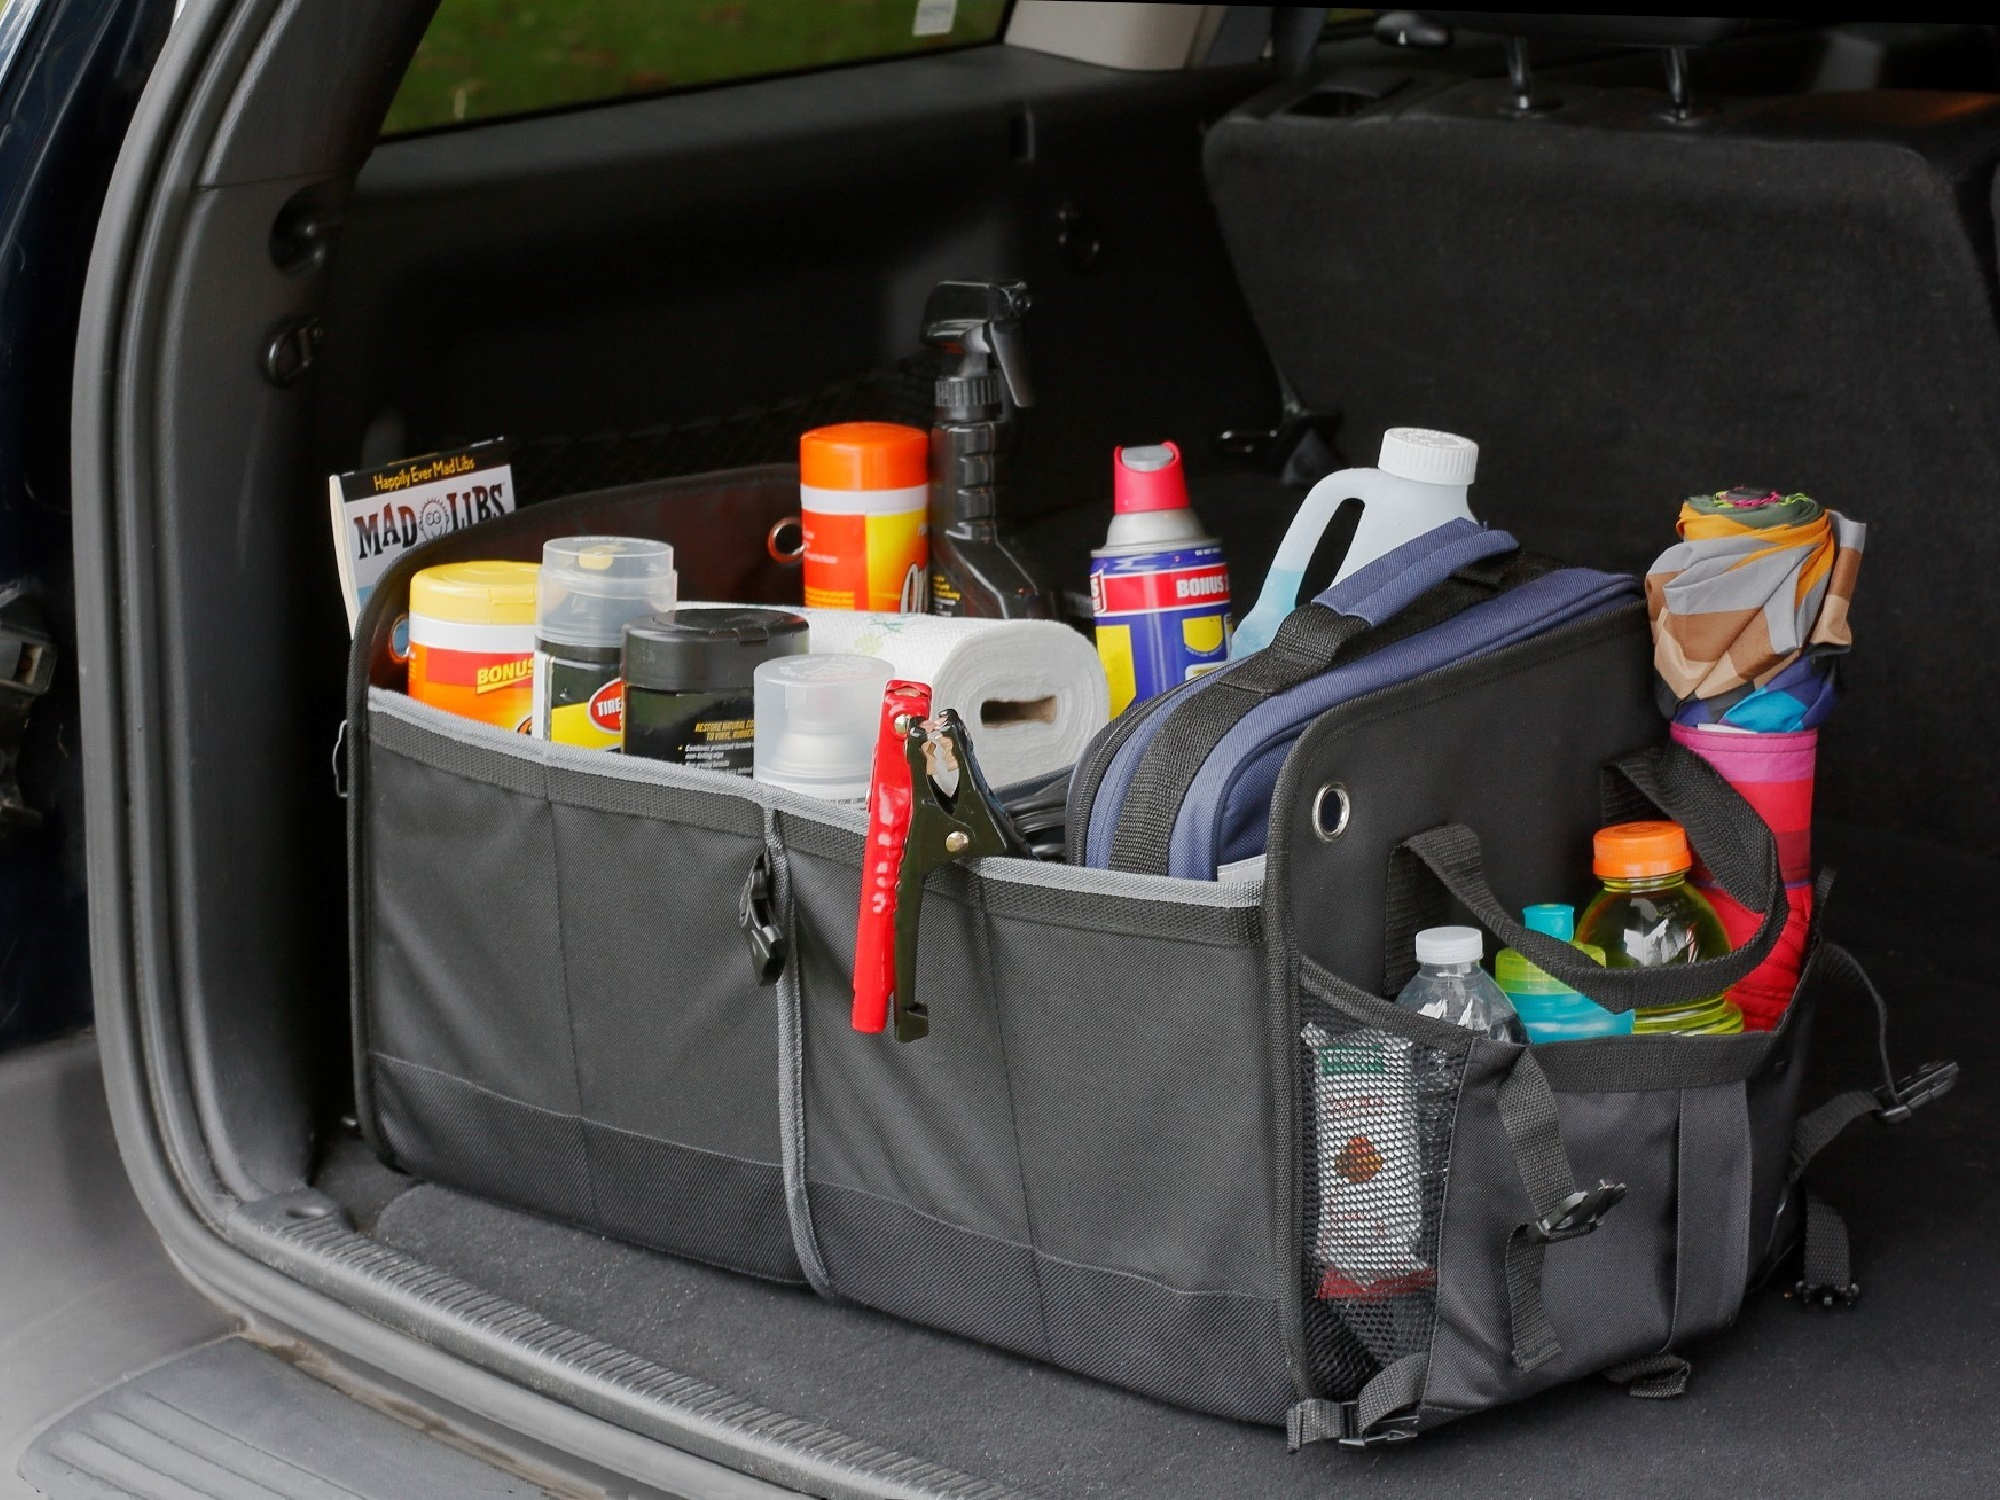 Car trunk organizer shown inside Jeep with Auto Supplies